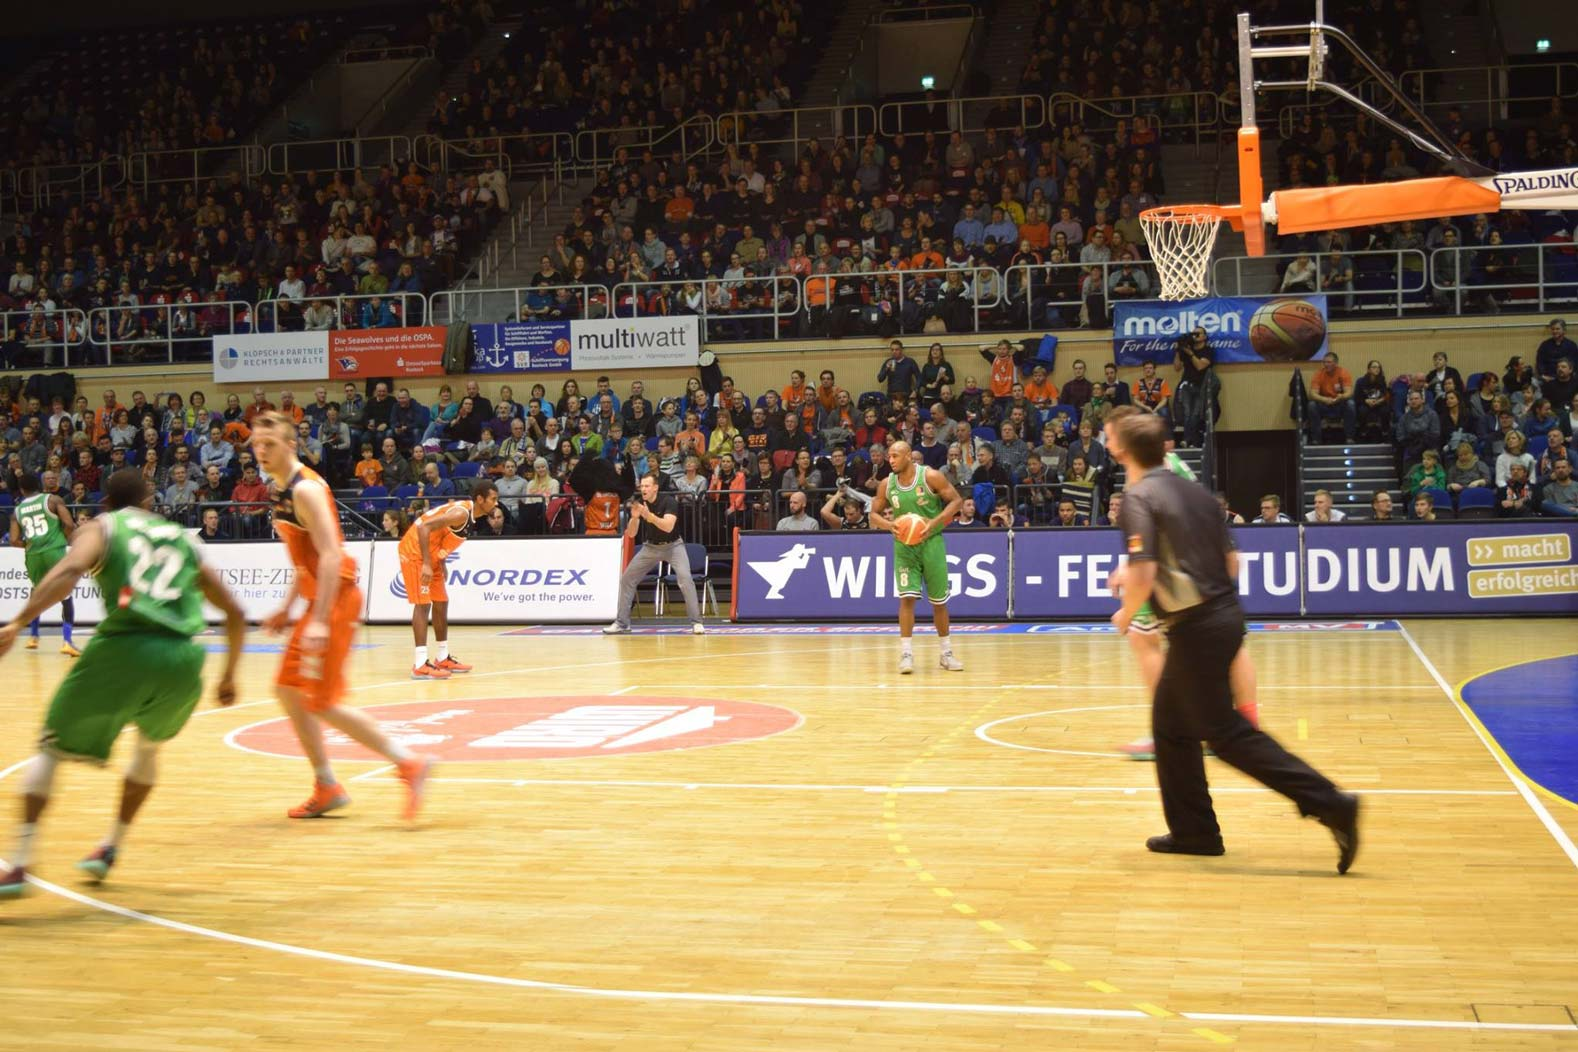 WINGS-Fernstudium Partner der 2. Basketball-Bundesliga